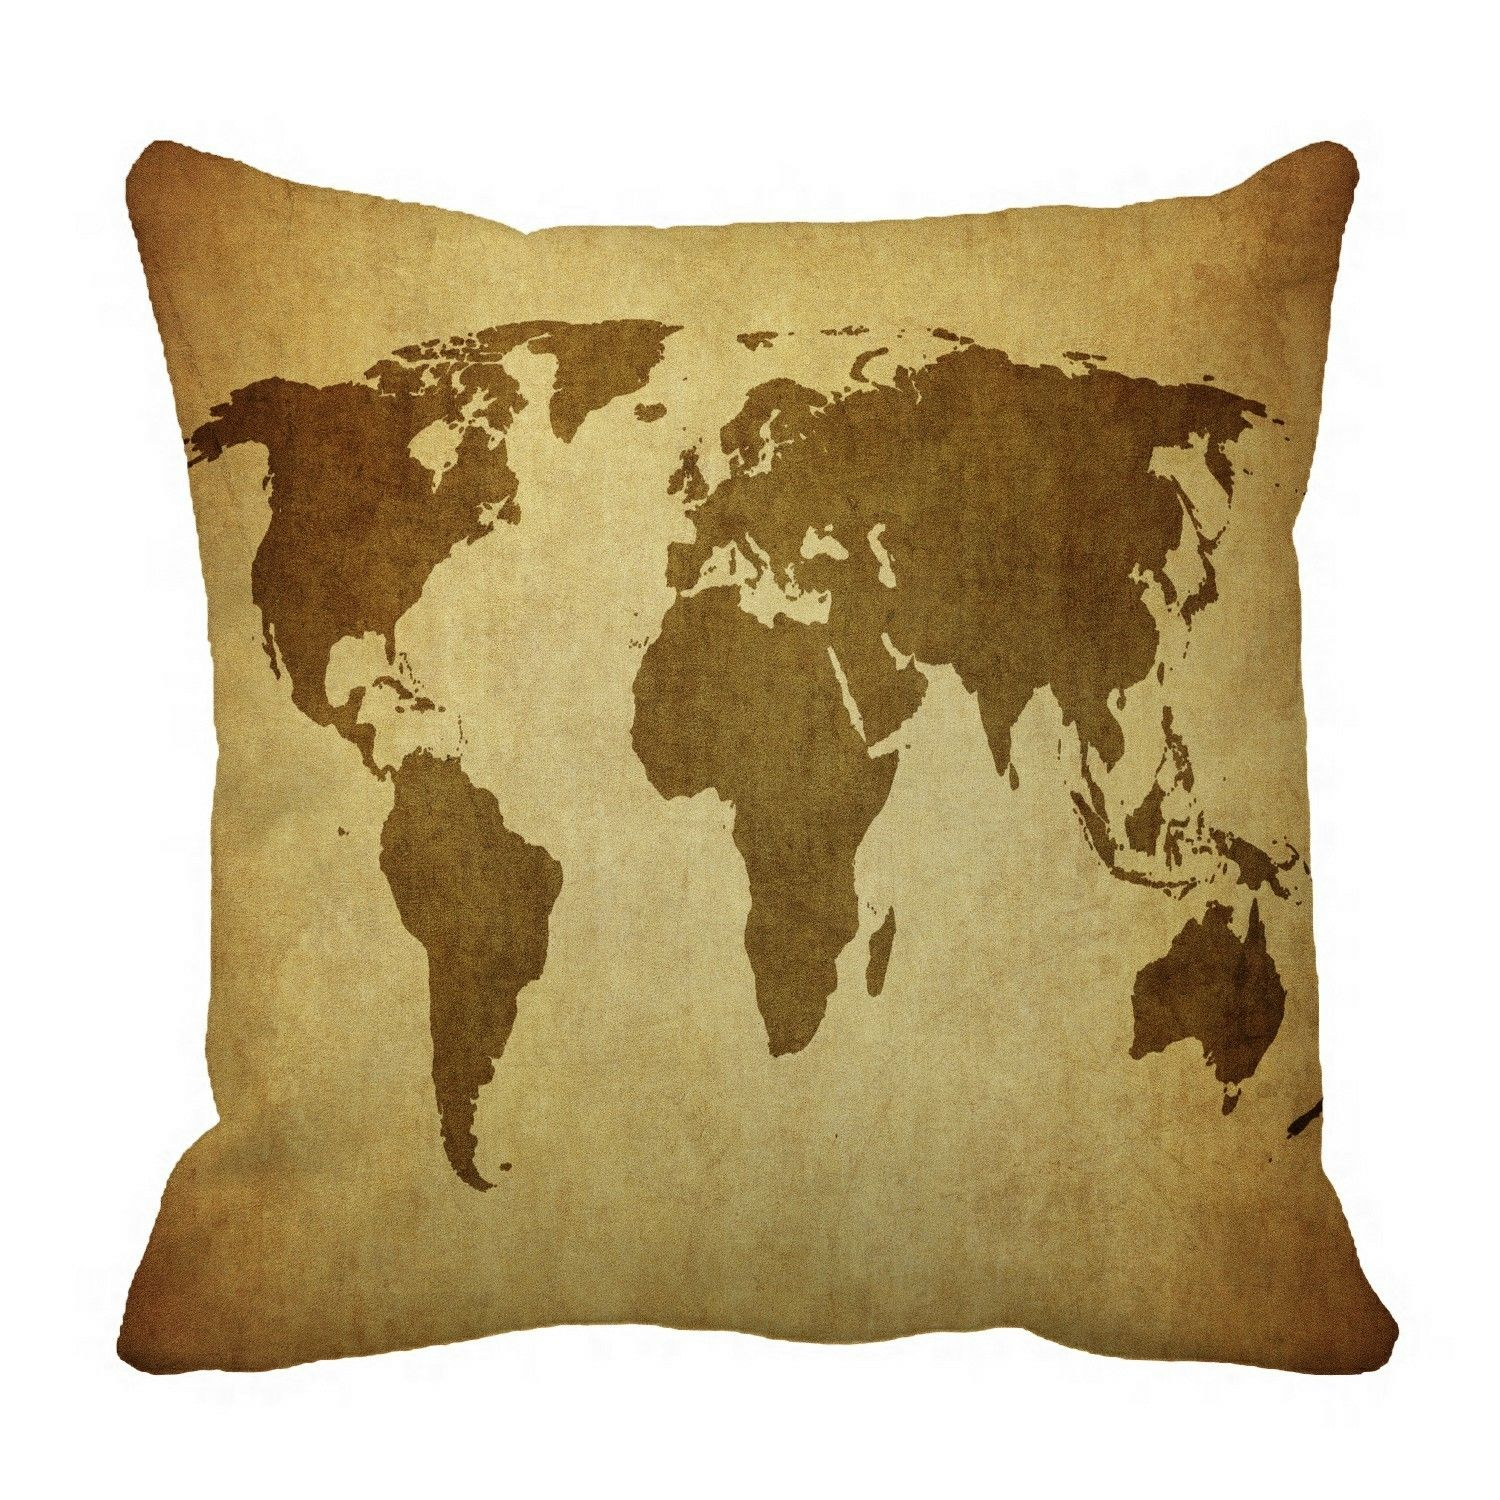 vintage map of the world Pillow?Case?Pillow?Cover?Cushion?Cover